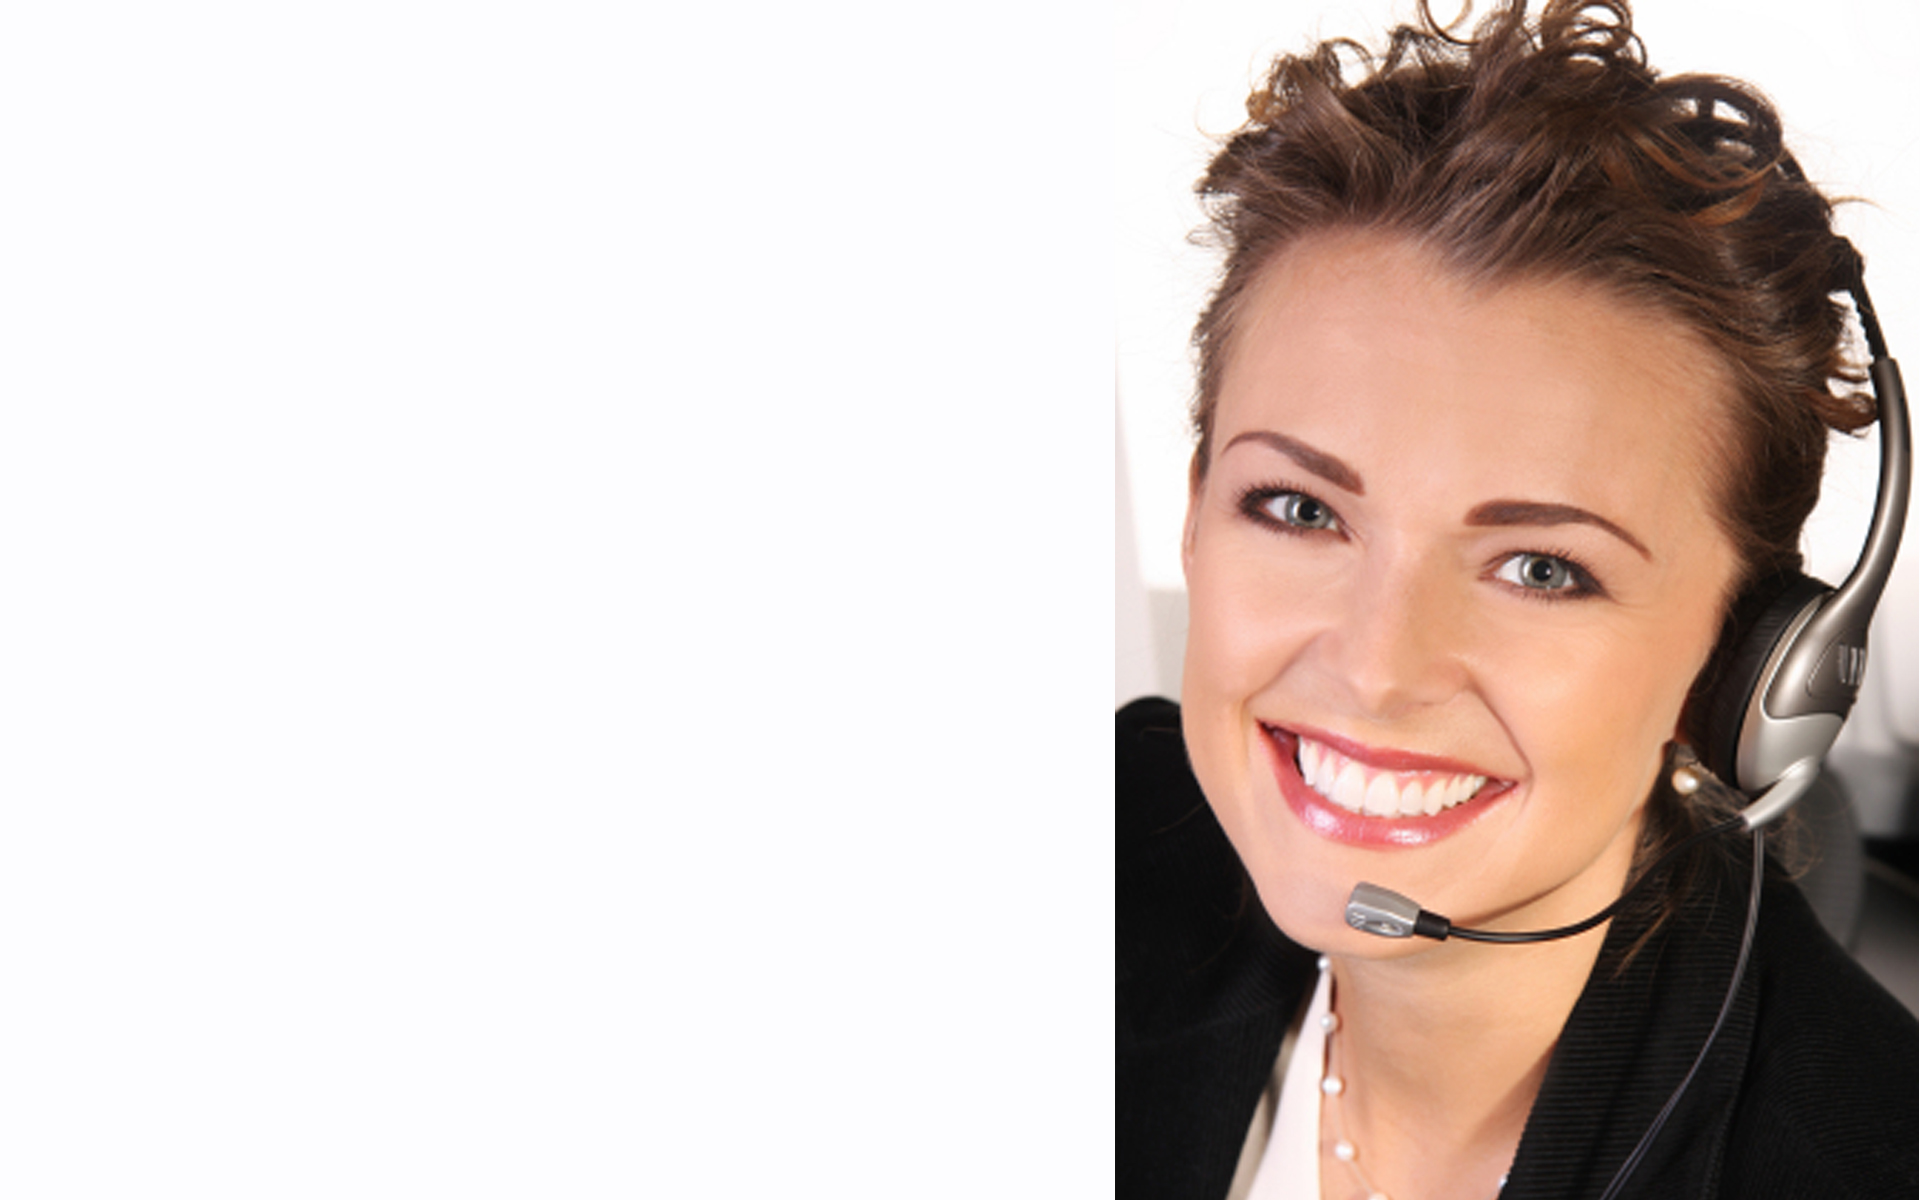 FIRST CAPITALAnswering Service